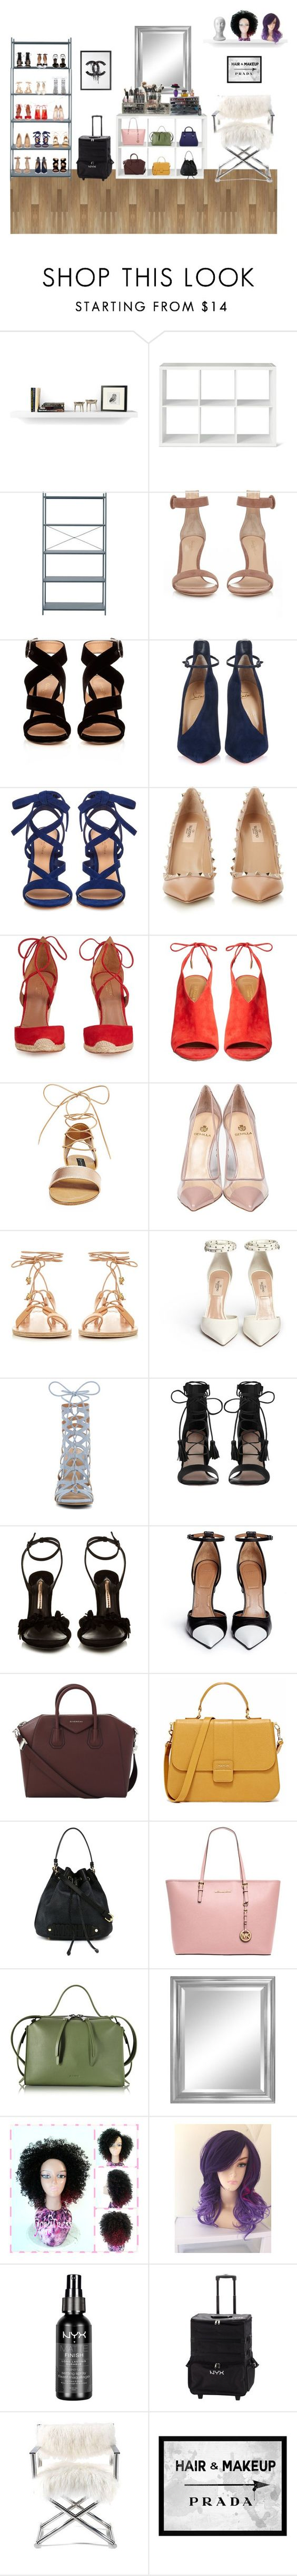 """""""Makeup Studio Bedroom"""" by crystal-castleberry on Polyvore featuring TemaHome, Threshold, ferm LIVING, Gianvito Rossi, Christian Louboutin, Valentino, Aquazzura, Steve Madden, Semilla and Ancient Greek Sandals"""